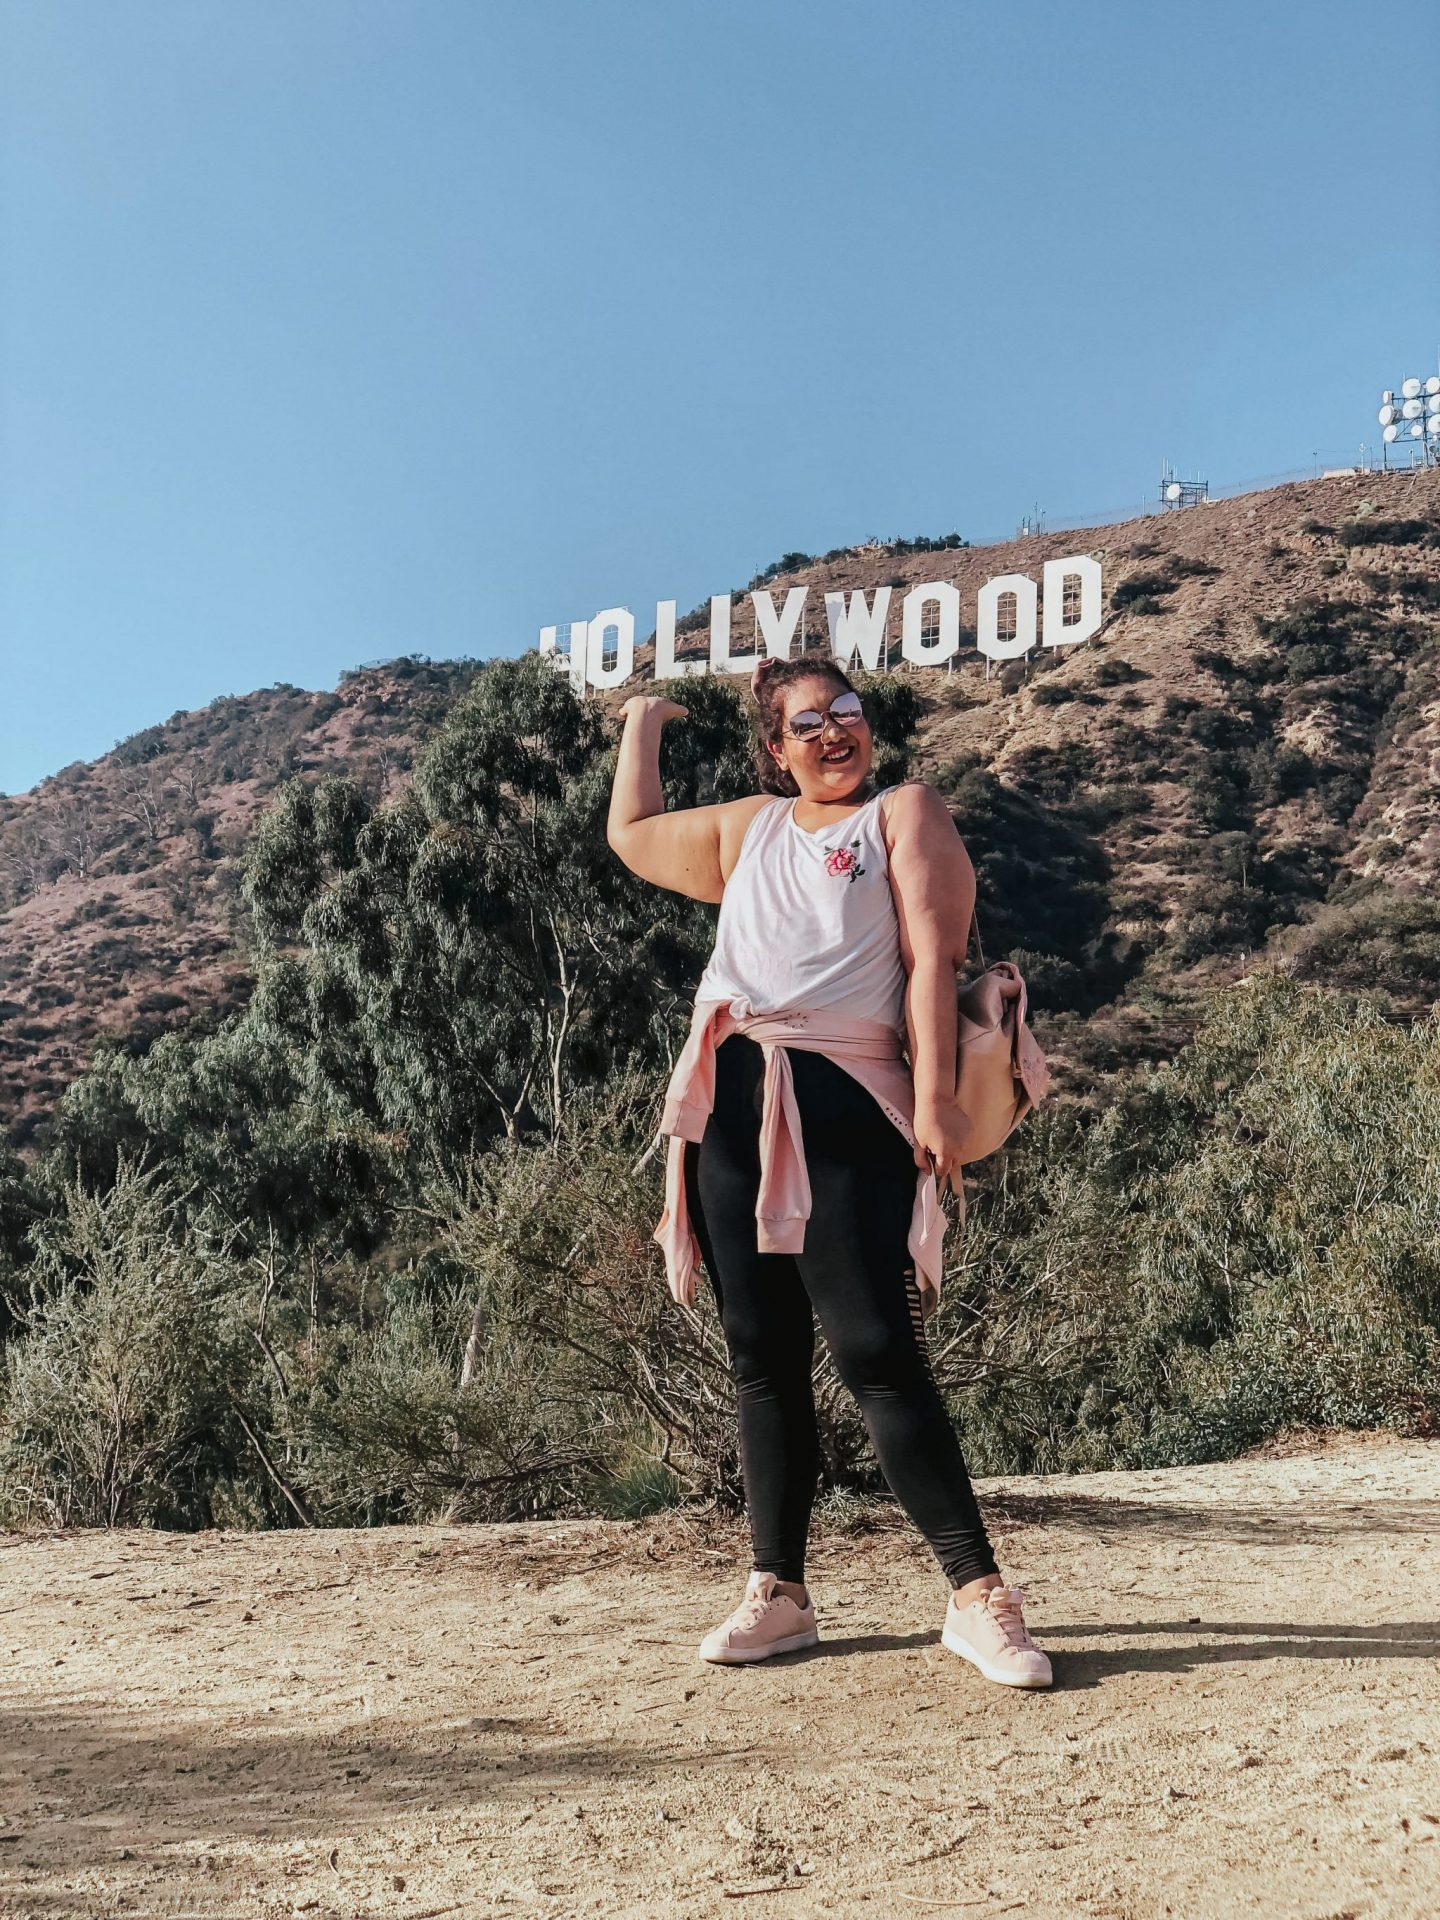 The Outfit I Wore to Hike to the Hollywood Sign